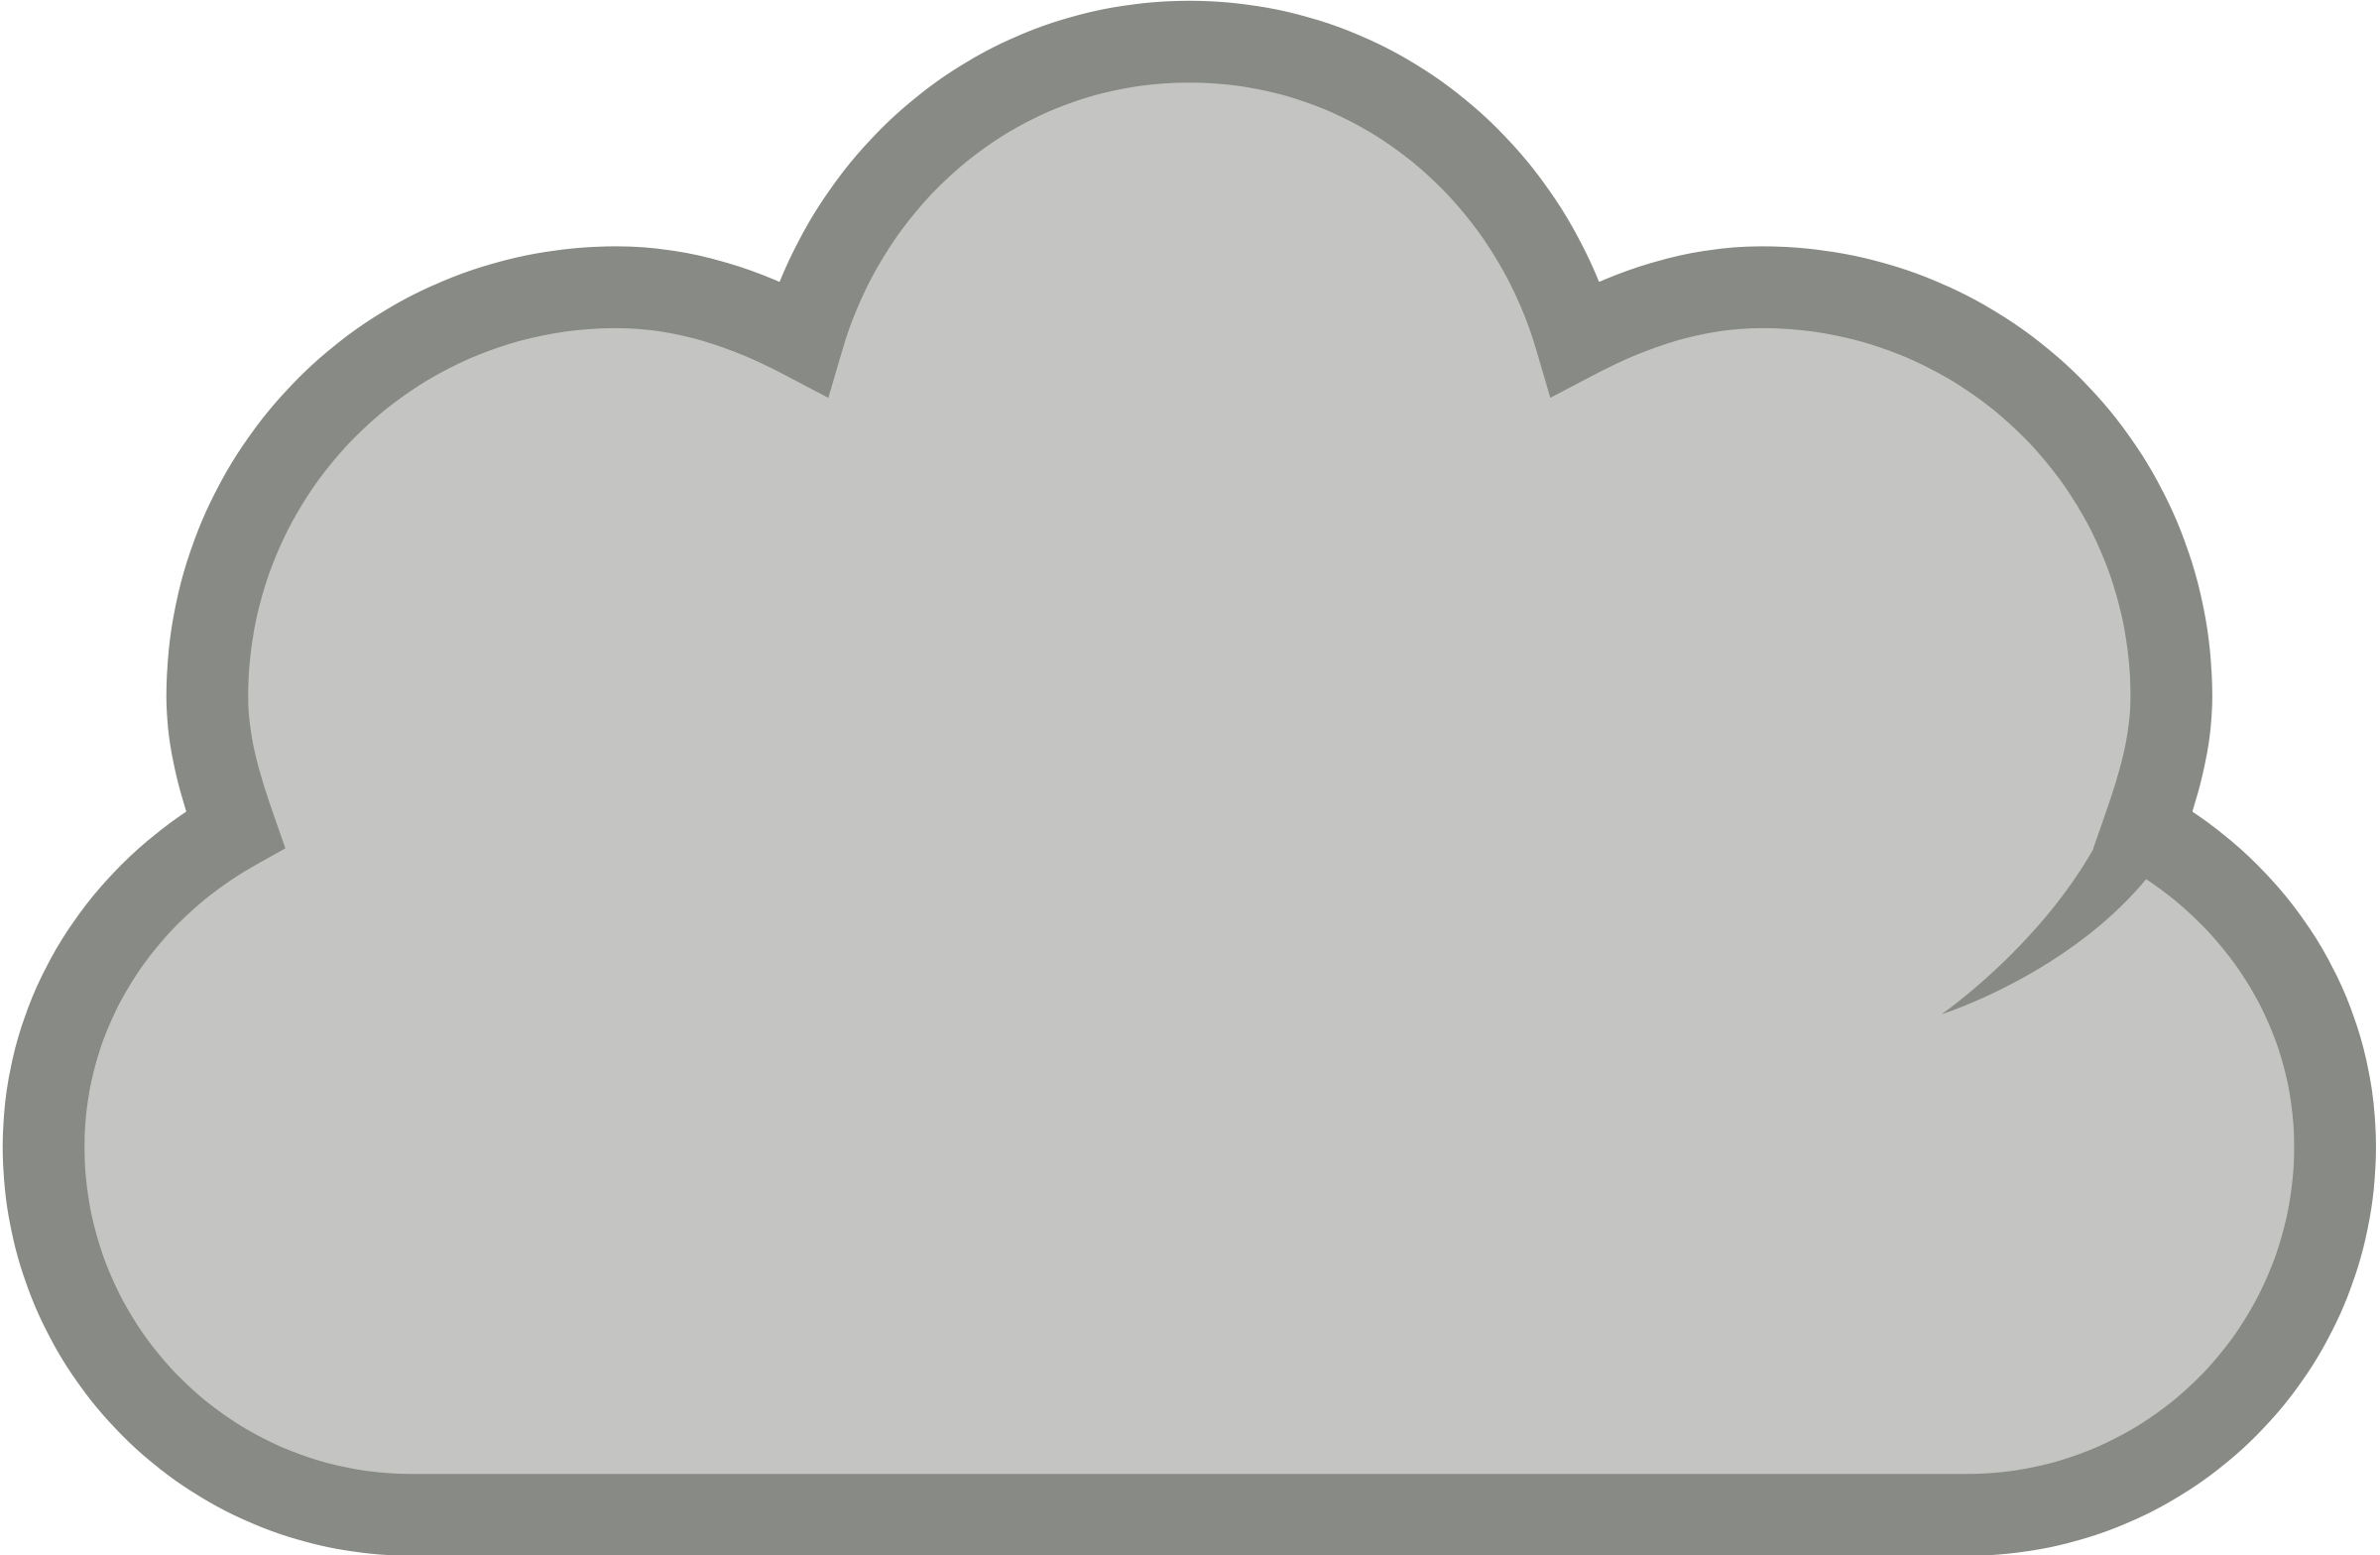 Cloudy Clipart - Clipart Kid